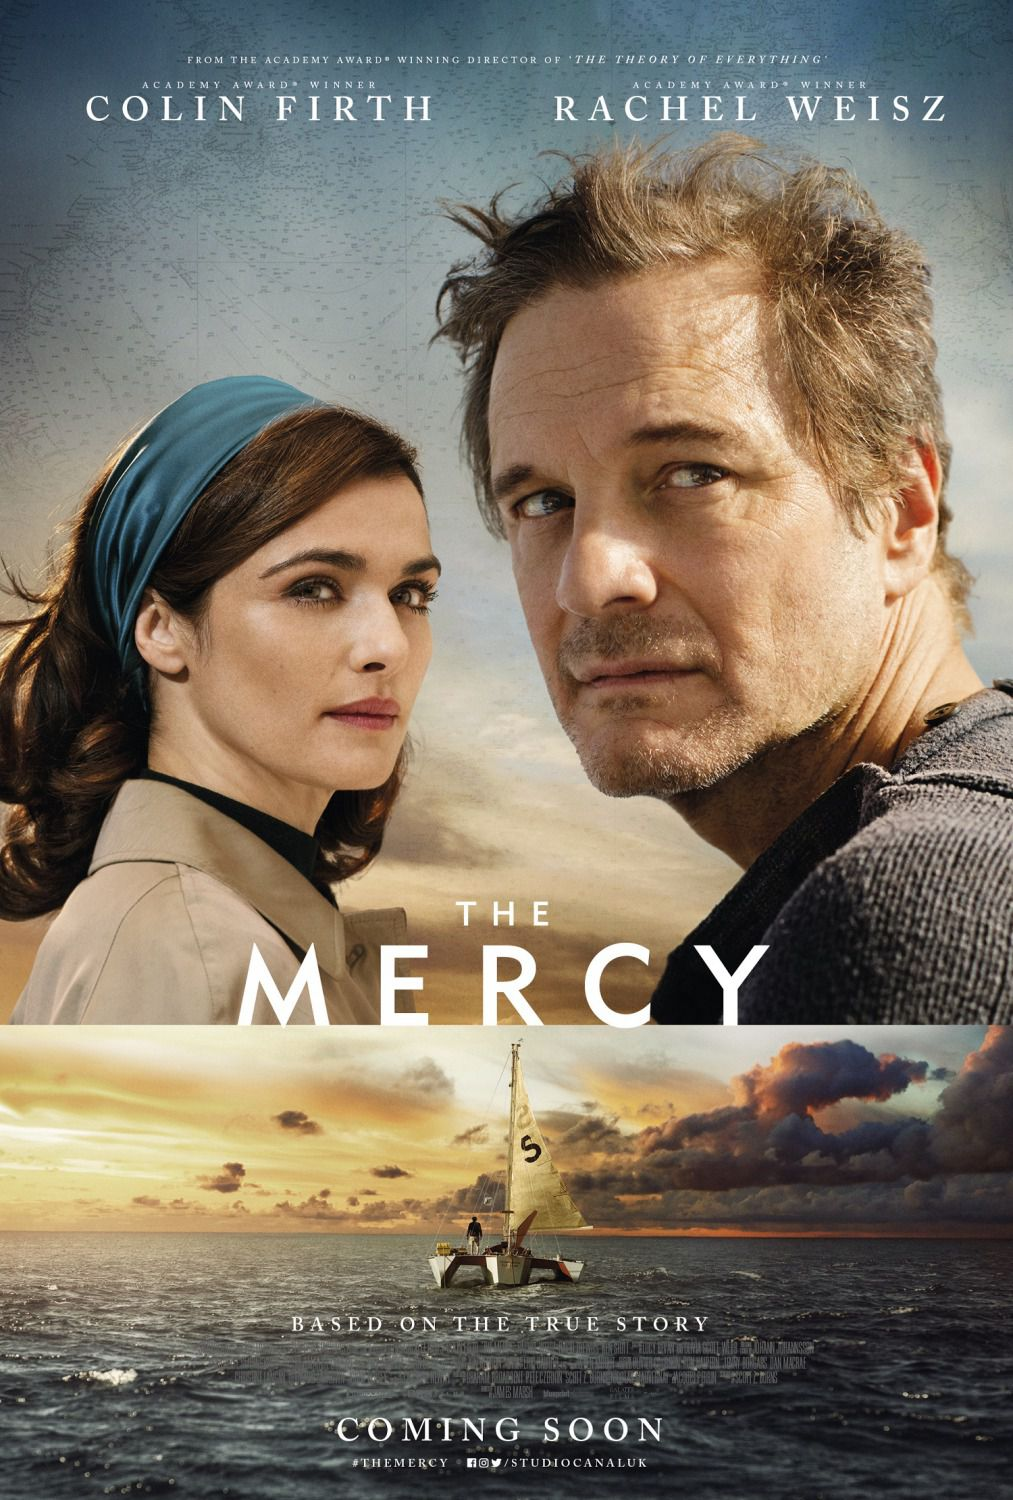 Mercy - Colin Firth, Rachel Weisz - film poster 2018